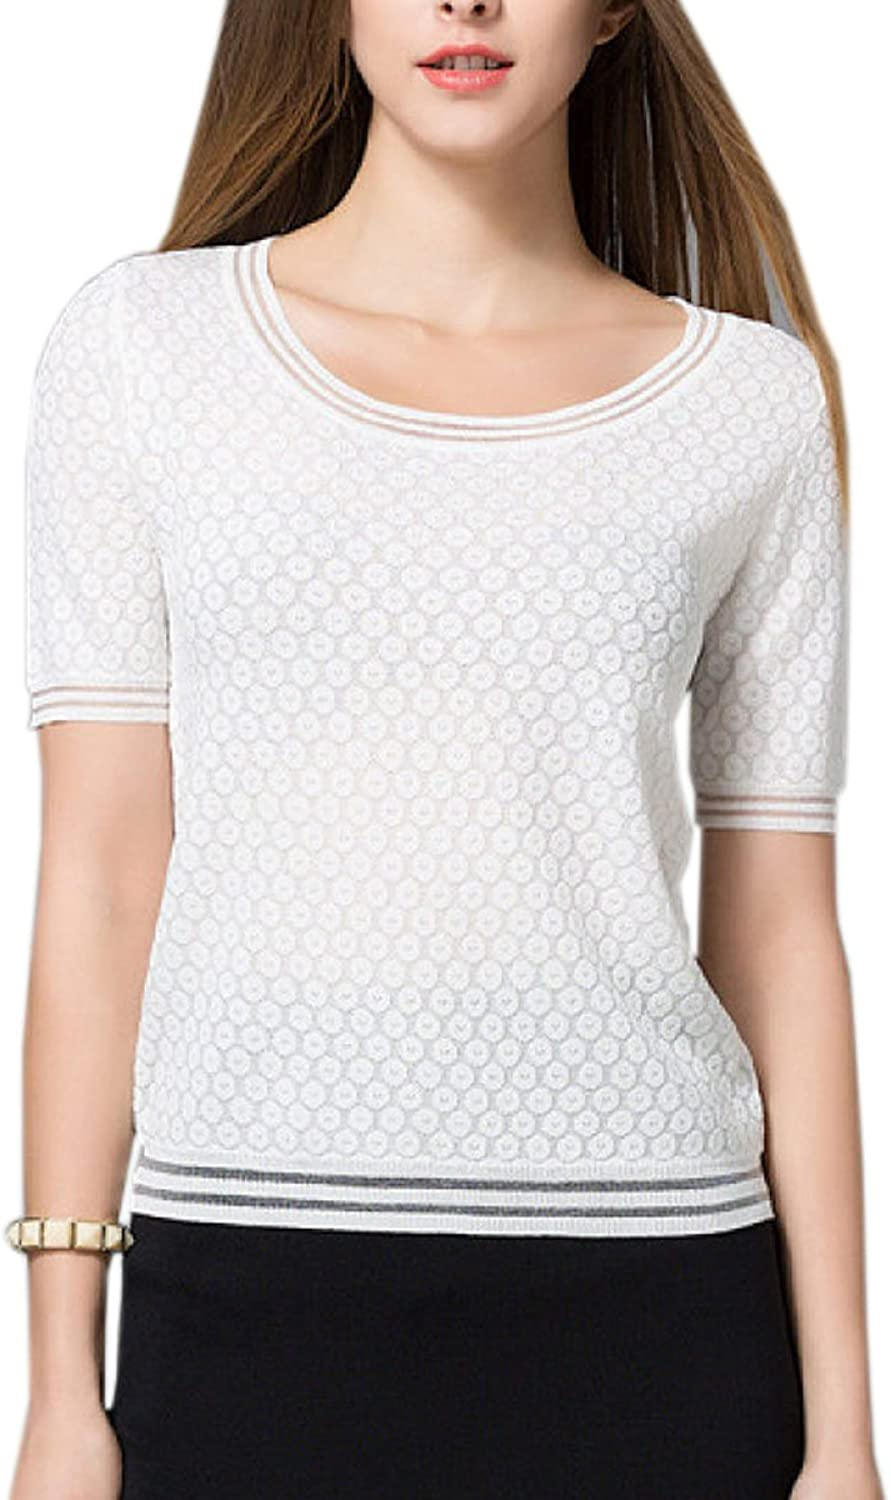 Lady Fashion Relaxed Simple Breathable Slim Knitted Soft Shirt Tops Blouse,WhiteM